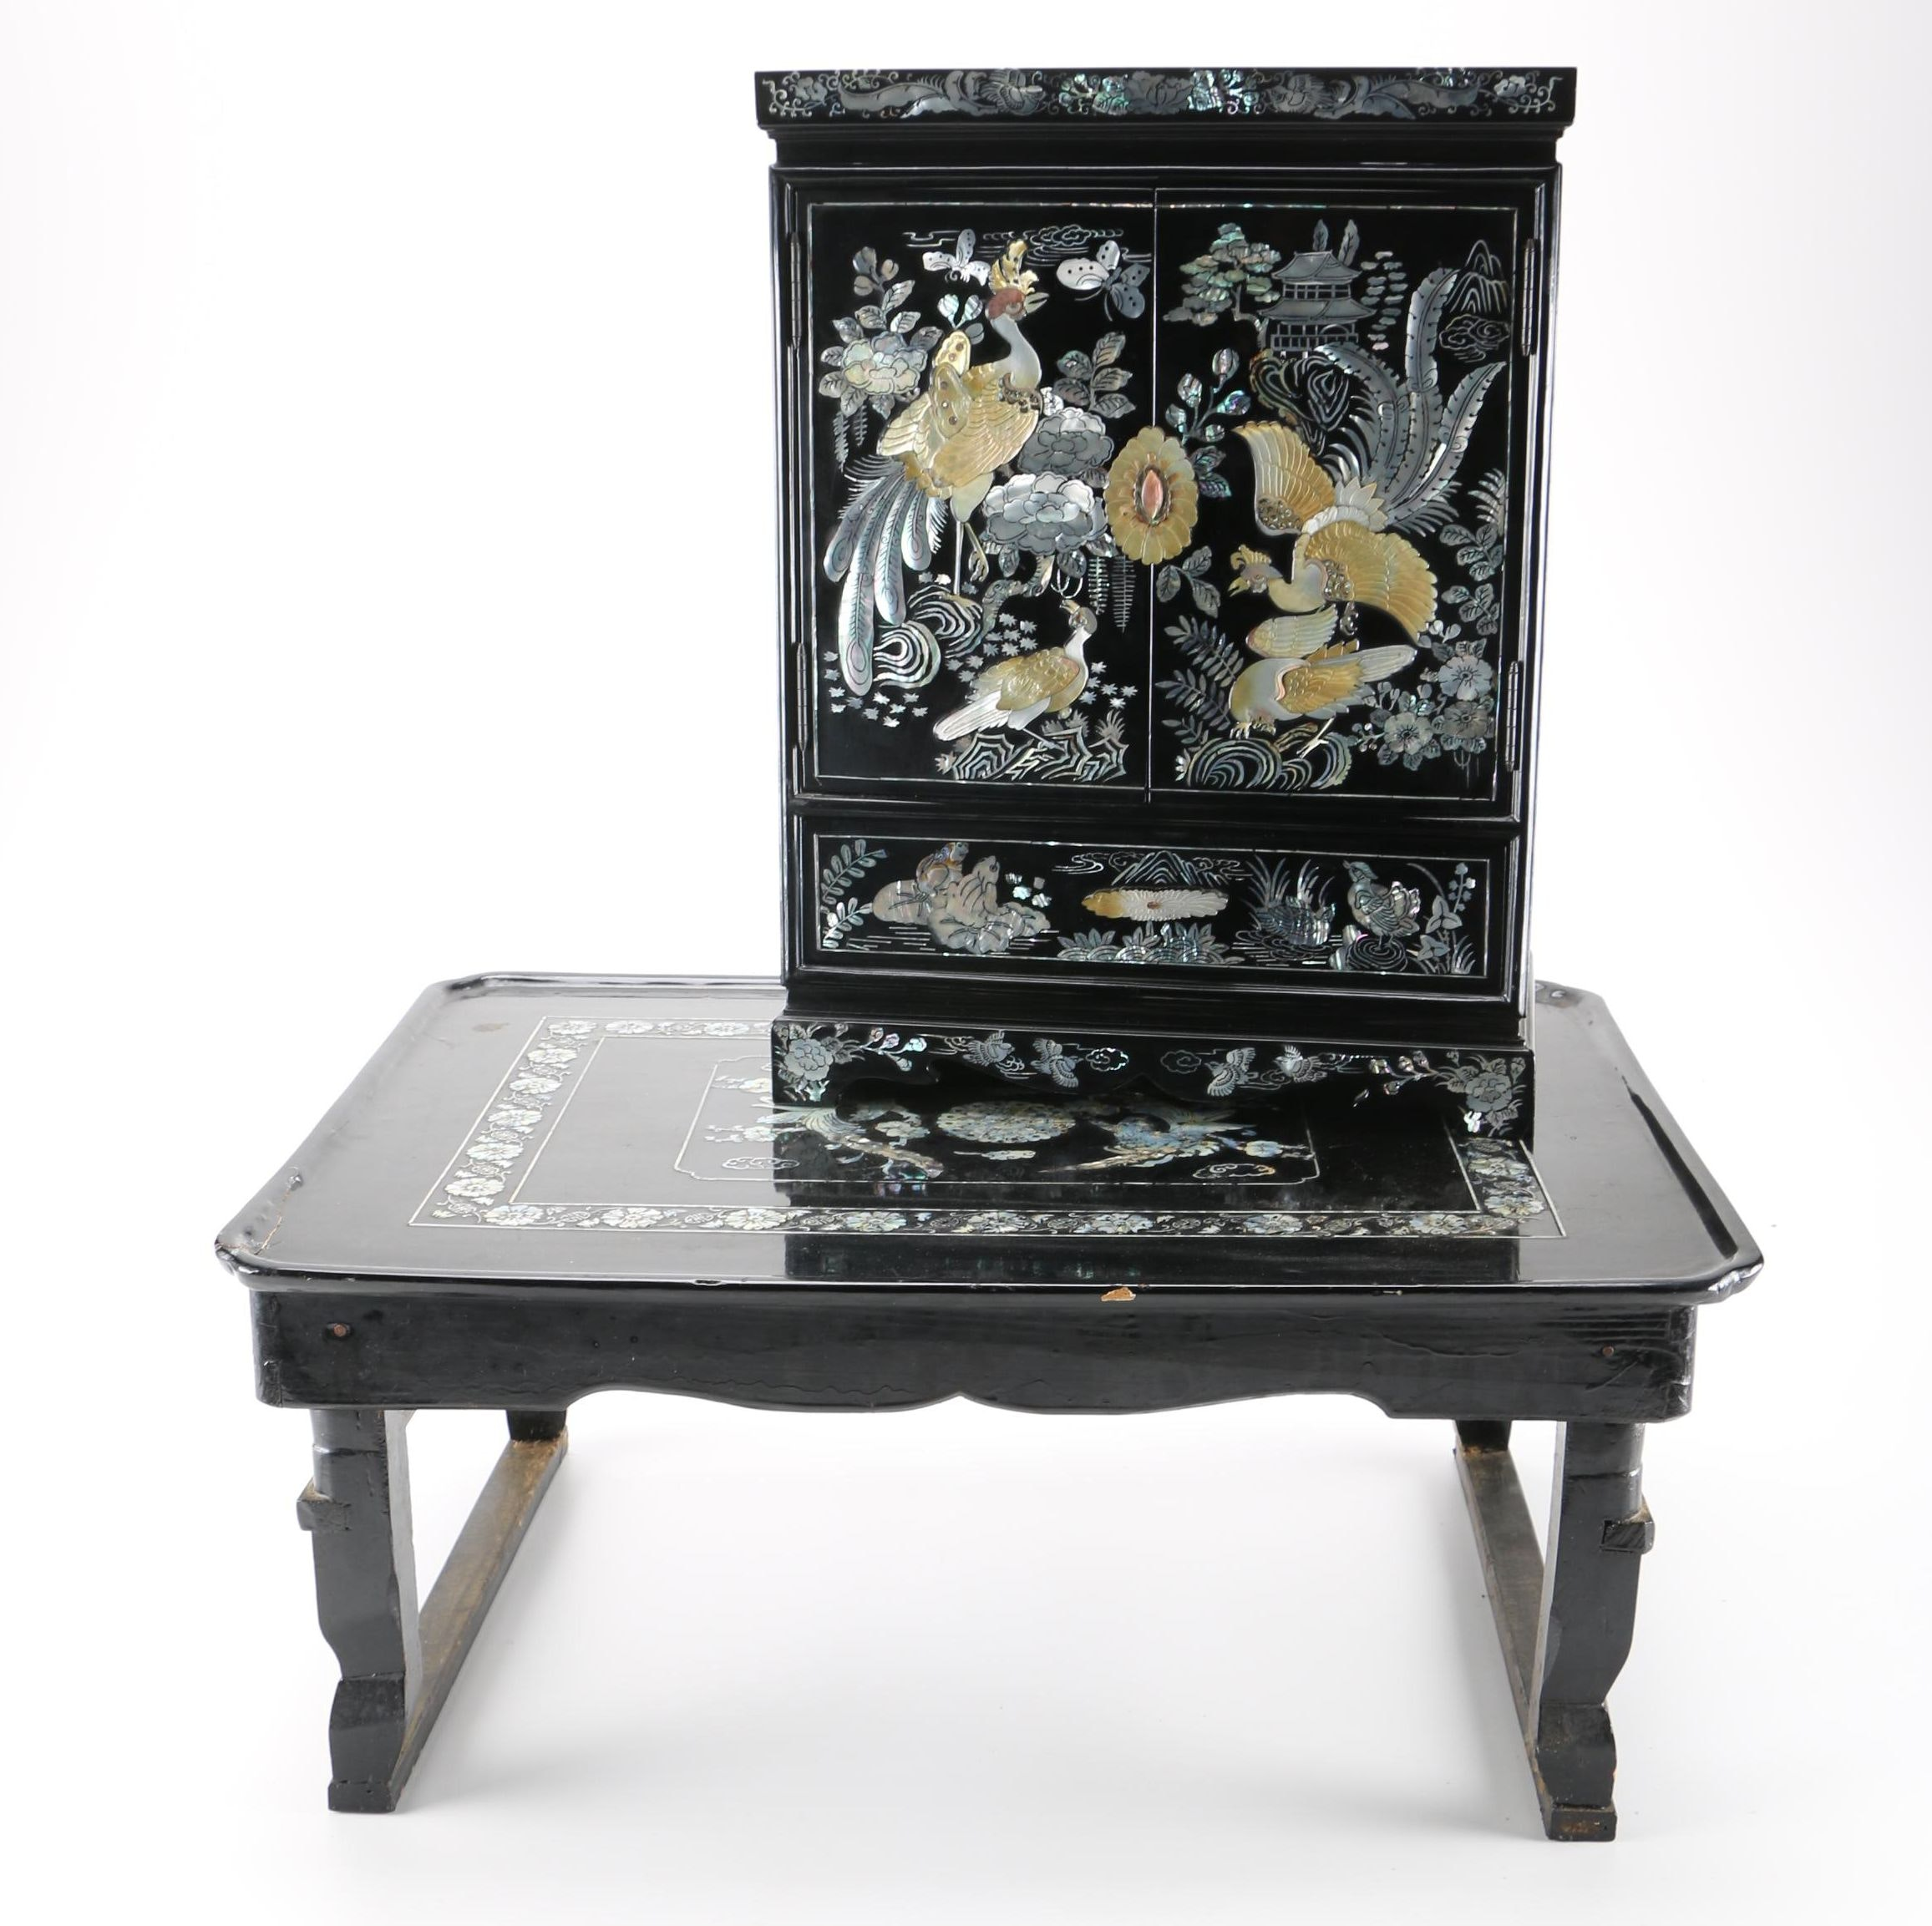 Chinese Mother Of Pearl Inlay Jewelry Chest and Bed Tray